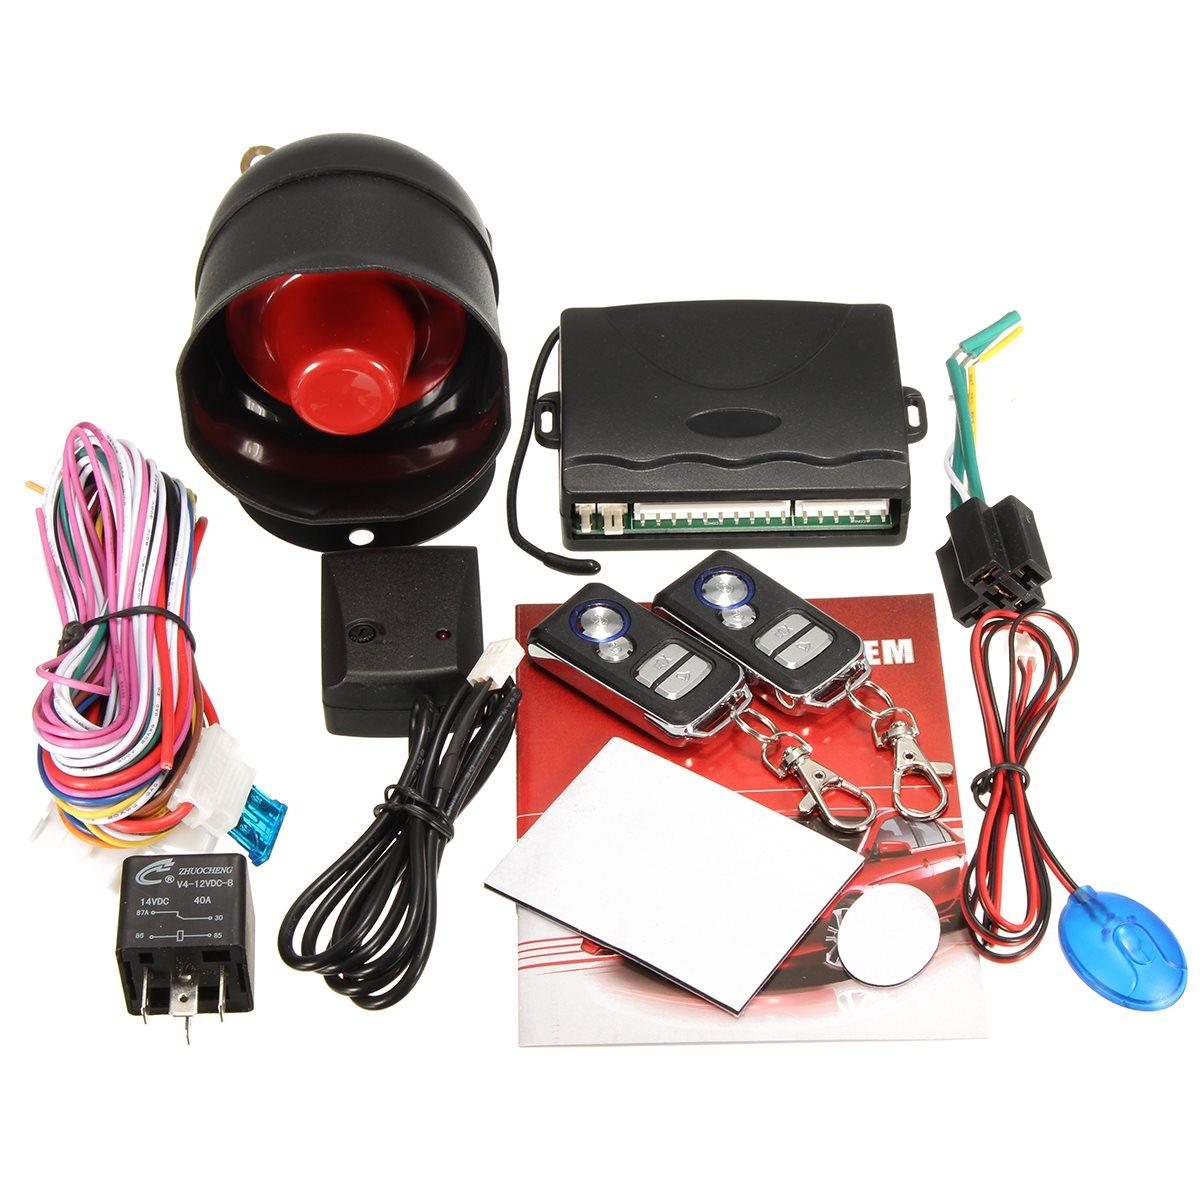 Universal 1-Way Car Vehicle Alarm Protection Security System Keyless Entry Siren +2 Remote Control Burglar top quality rolling code pke car alarm system with passive keyless entry power window output automatically lock unlock car